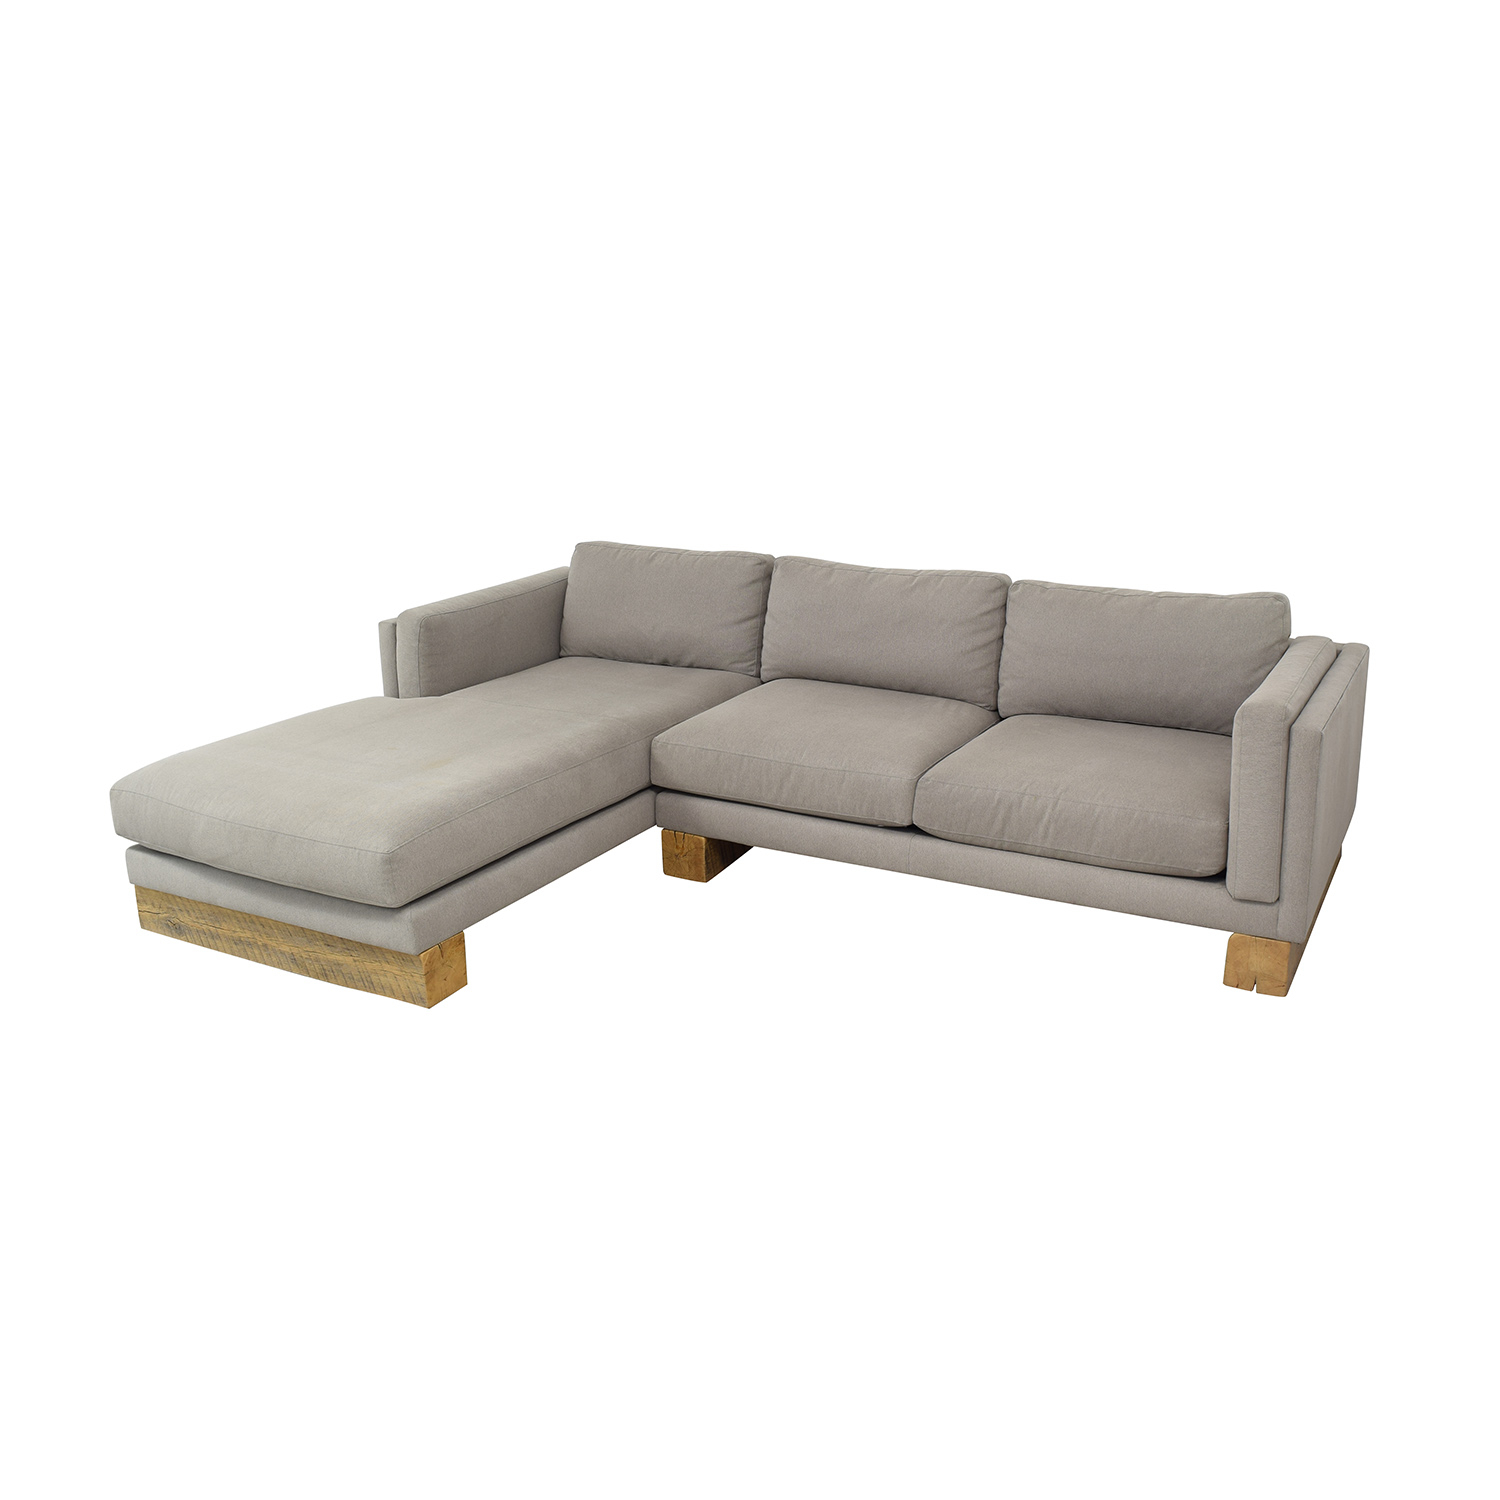 76% Off – Room & Board Room & Board Custom Sectional With In Room And Board Sectional Sofas (View 4 of 15)